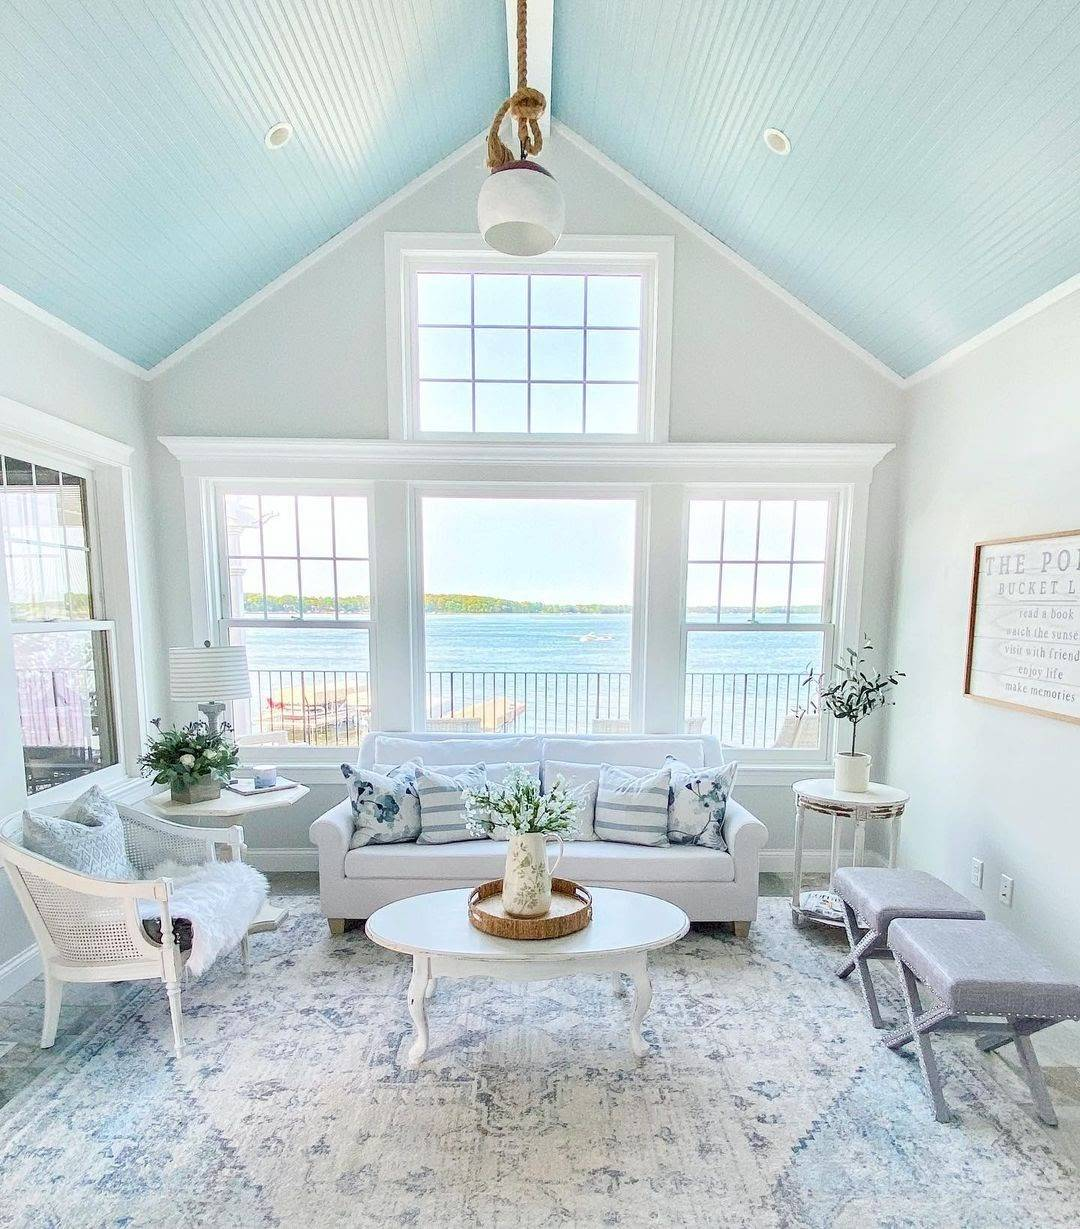 Sunroom Design Ideas To Help You Get Your Daily Dose Of Vitamin C